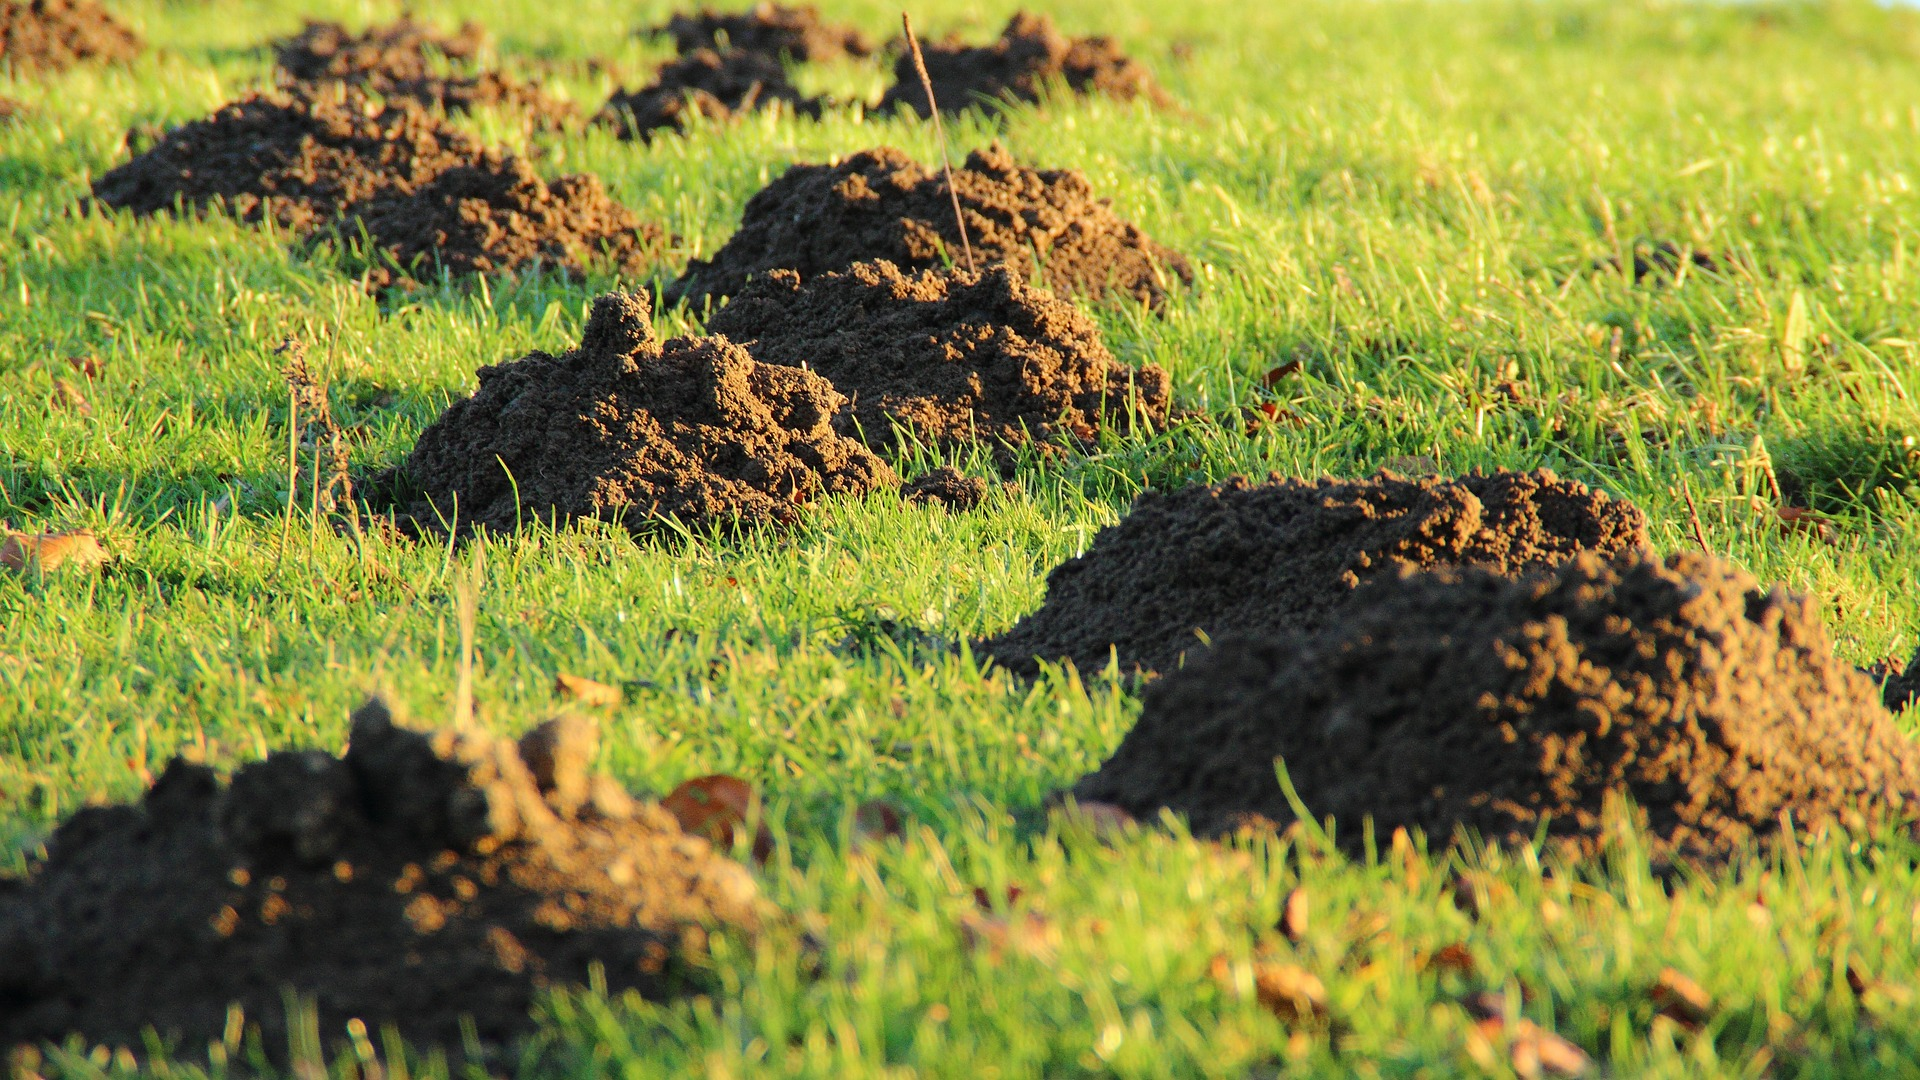 How to get rid of ground moles - Moles And Lawn Damage